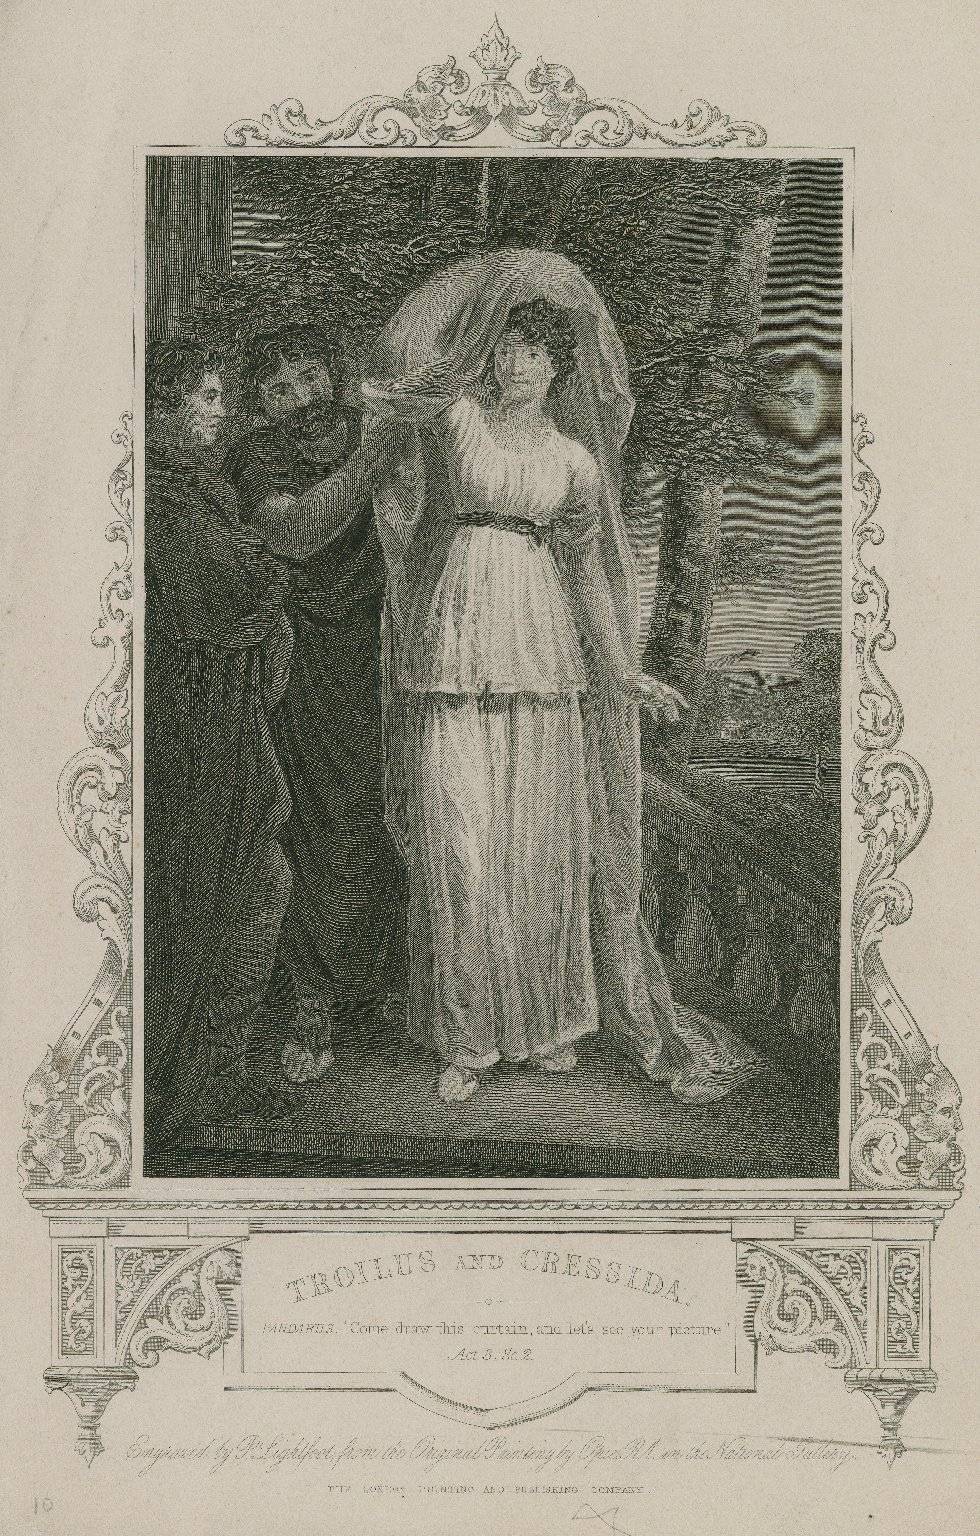 """Troilus and Cressida, Pandarus: """"Come, draw this curtain ..."""" act 3, sc. 2 ... [graphic] / engraved by P. Lightfoot from the original painting by Opie."""